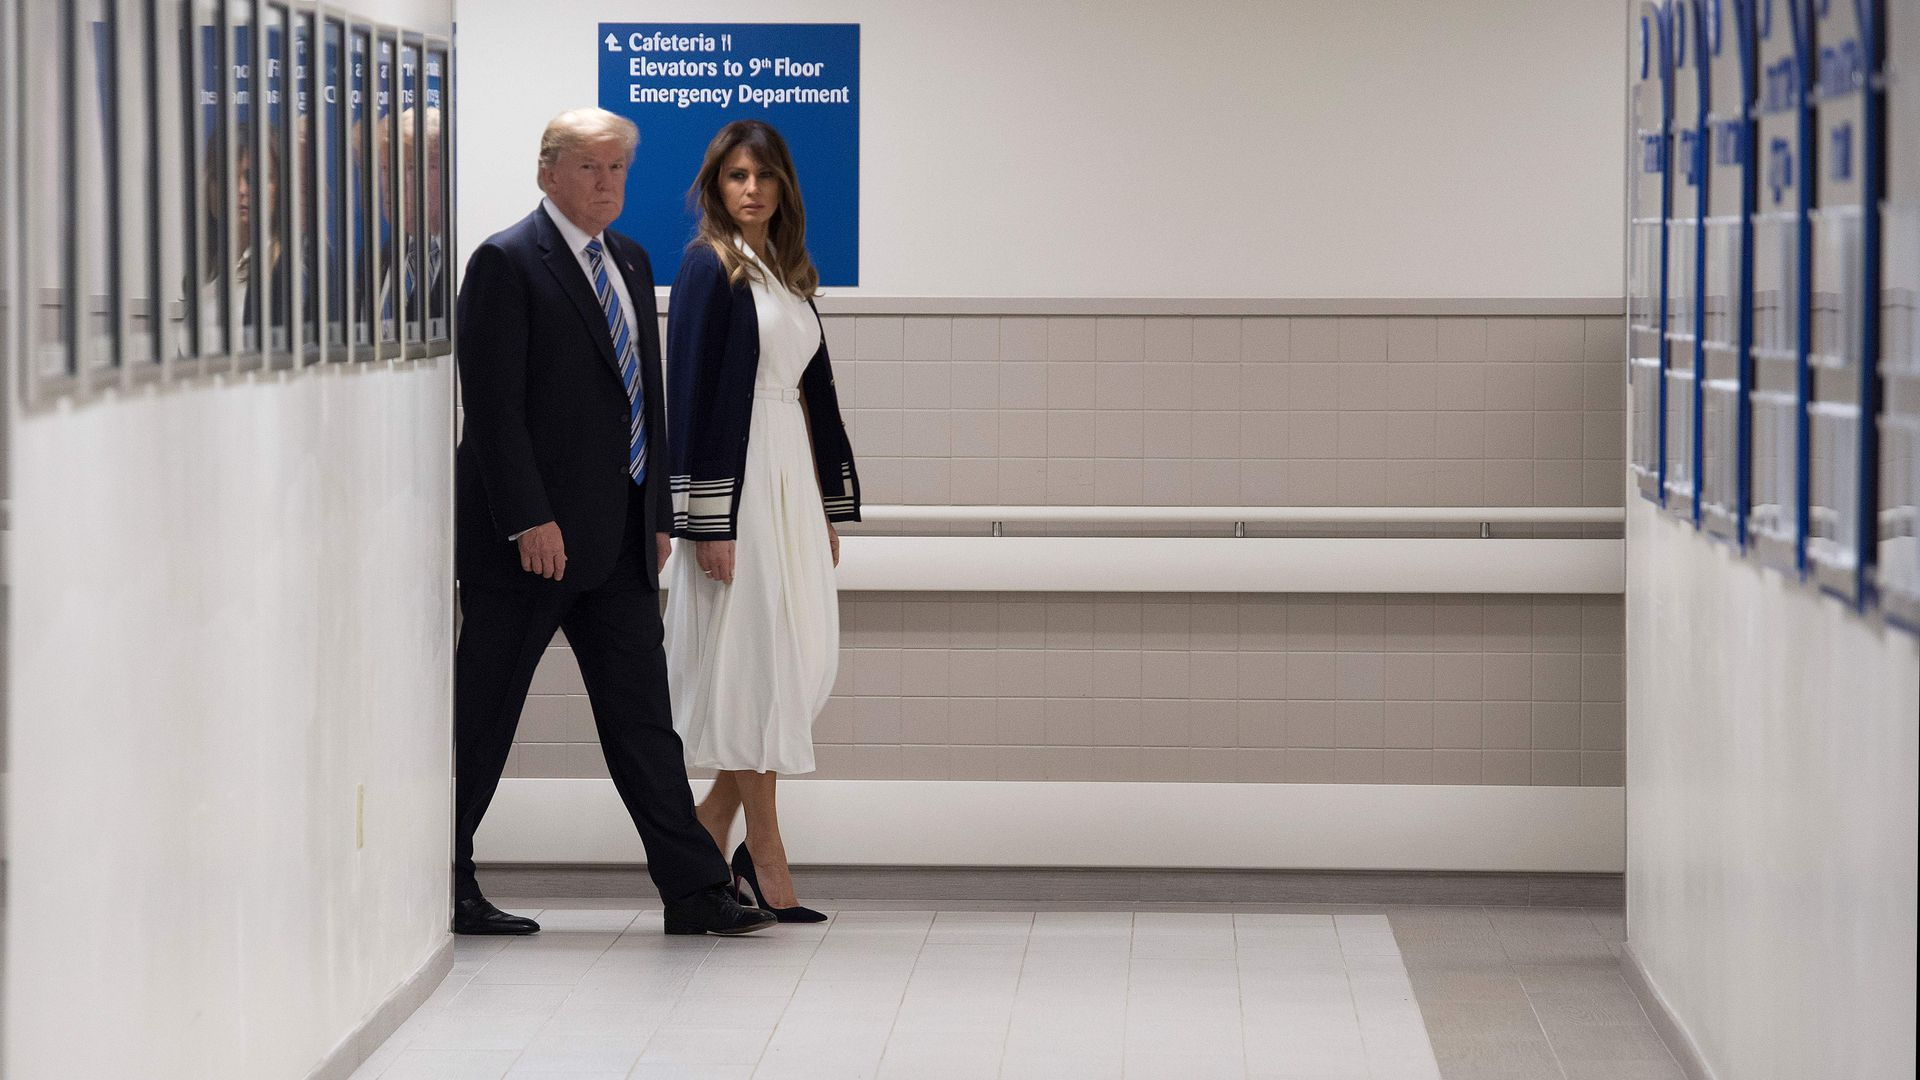 President Trump and the First Lady at a Florida hospital